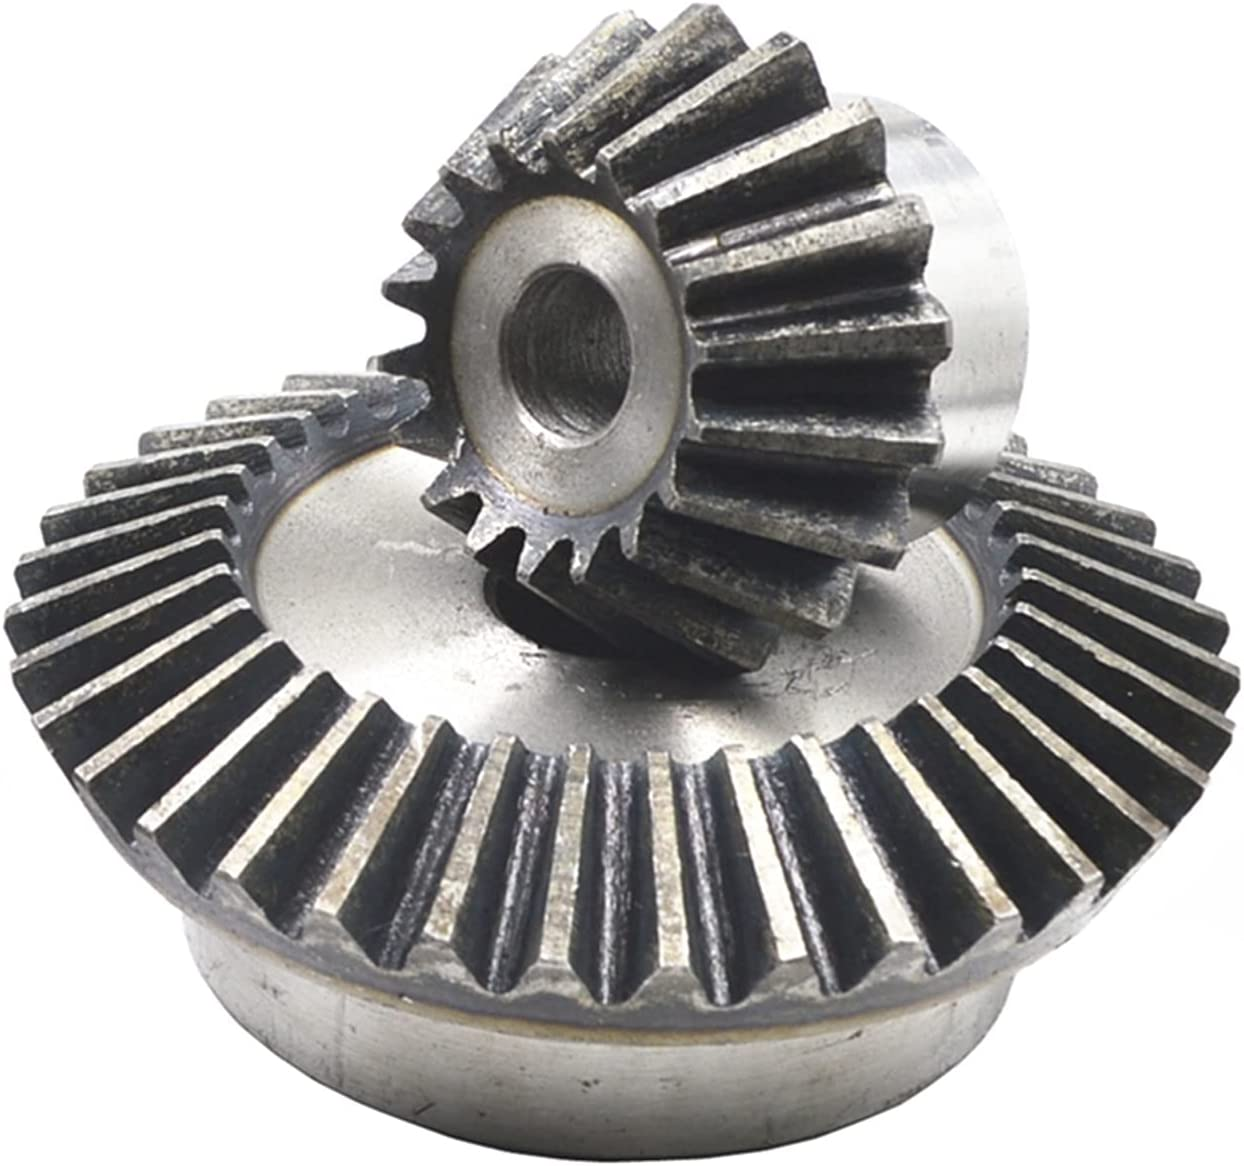 TMP1105 Special sale item 2pcs 1:3 Bevel Gear 1.5 Modulus Inn 6mm Hole 15Teeth 45T New products world's highest quality popular